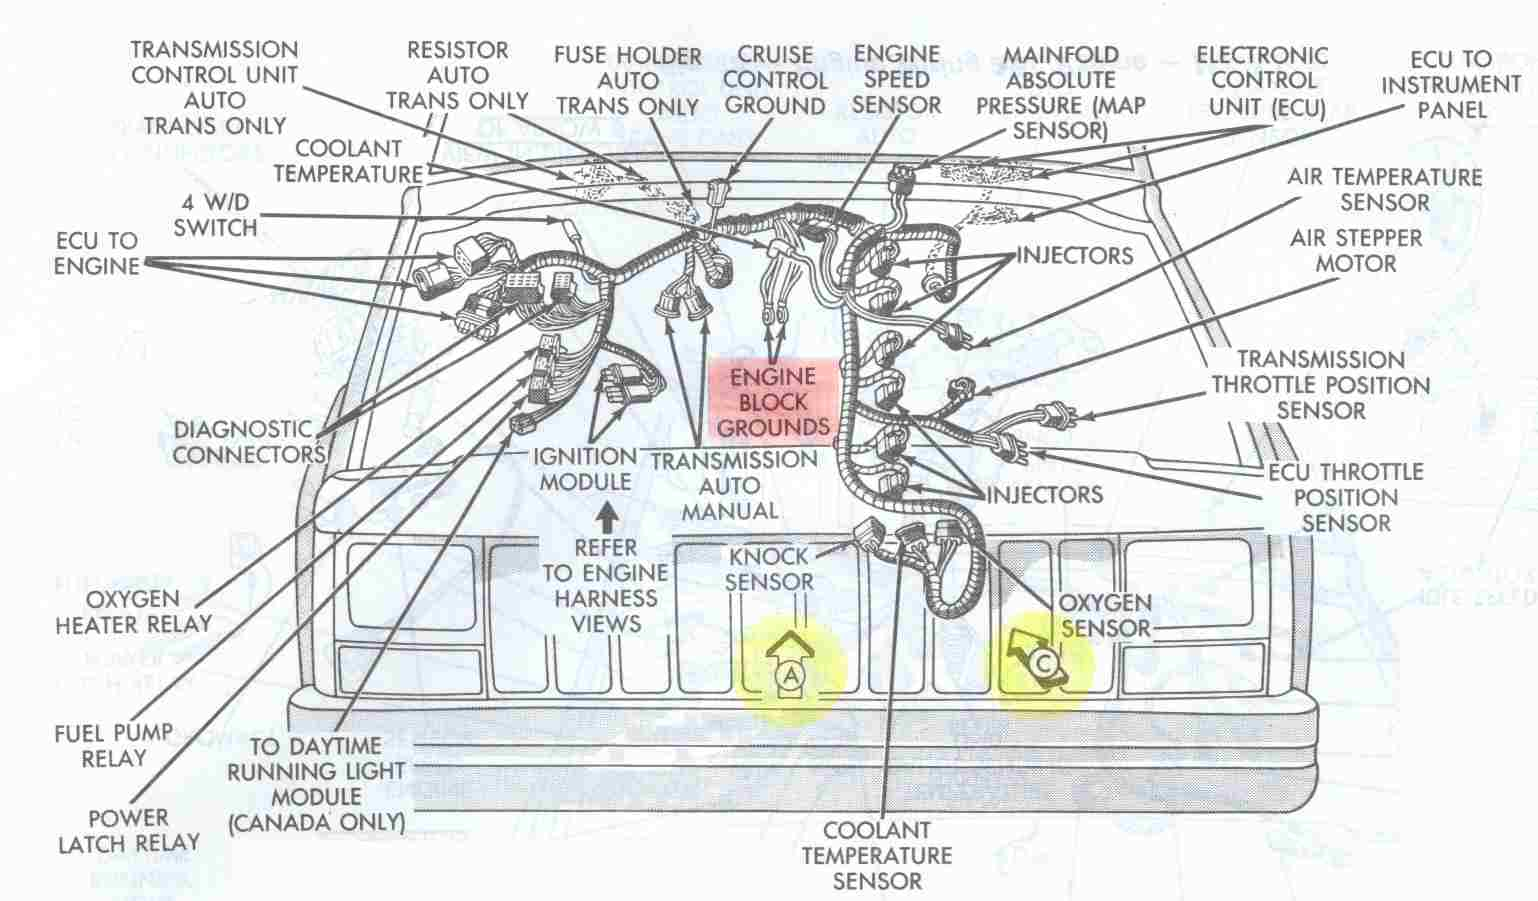 Jeep Cherokee Electrical Diagnosing Erratic Behavior Of Engine 1999 Jeep  Grand Cherokee Specs 1999 Grand Cherokee Engine Diagram